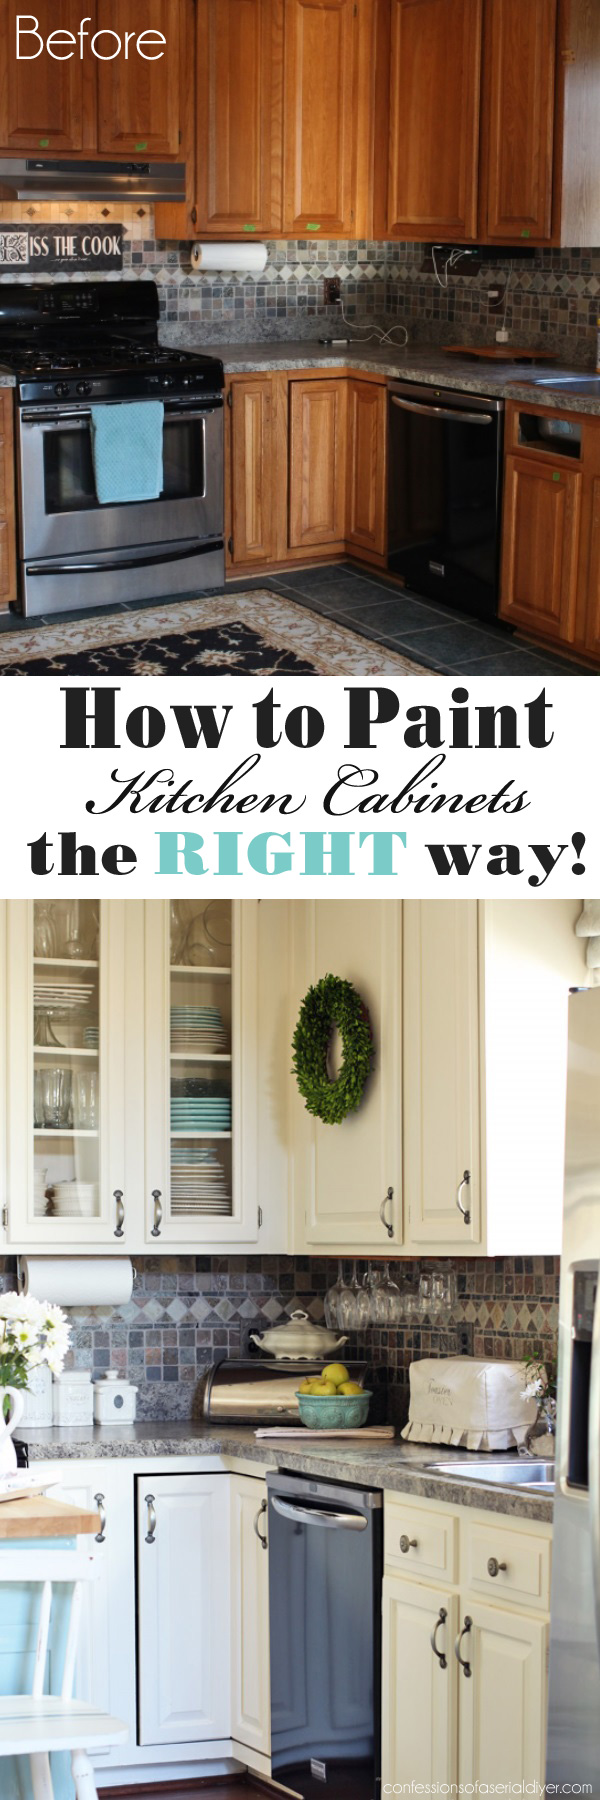 How to Paint Kitchen Cabinets (A Step-by-Step Guide) | Confessions ...